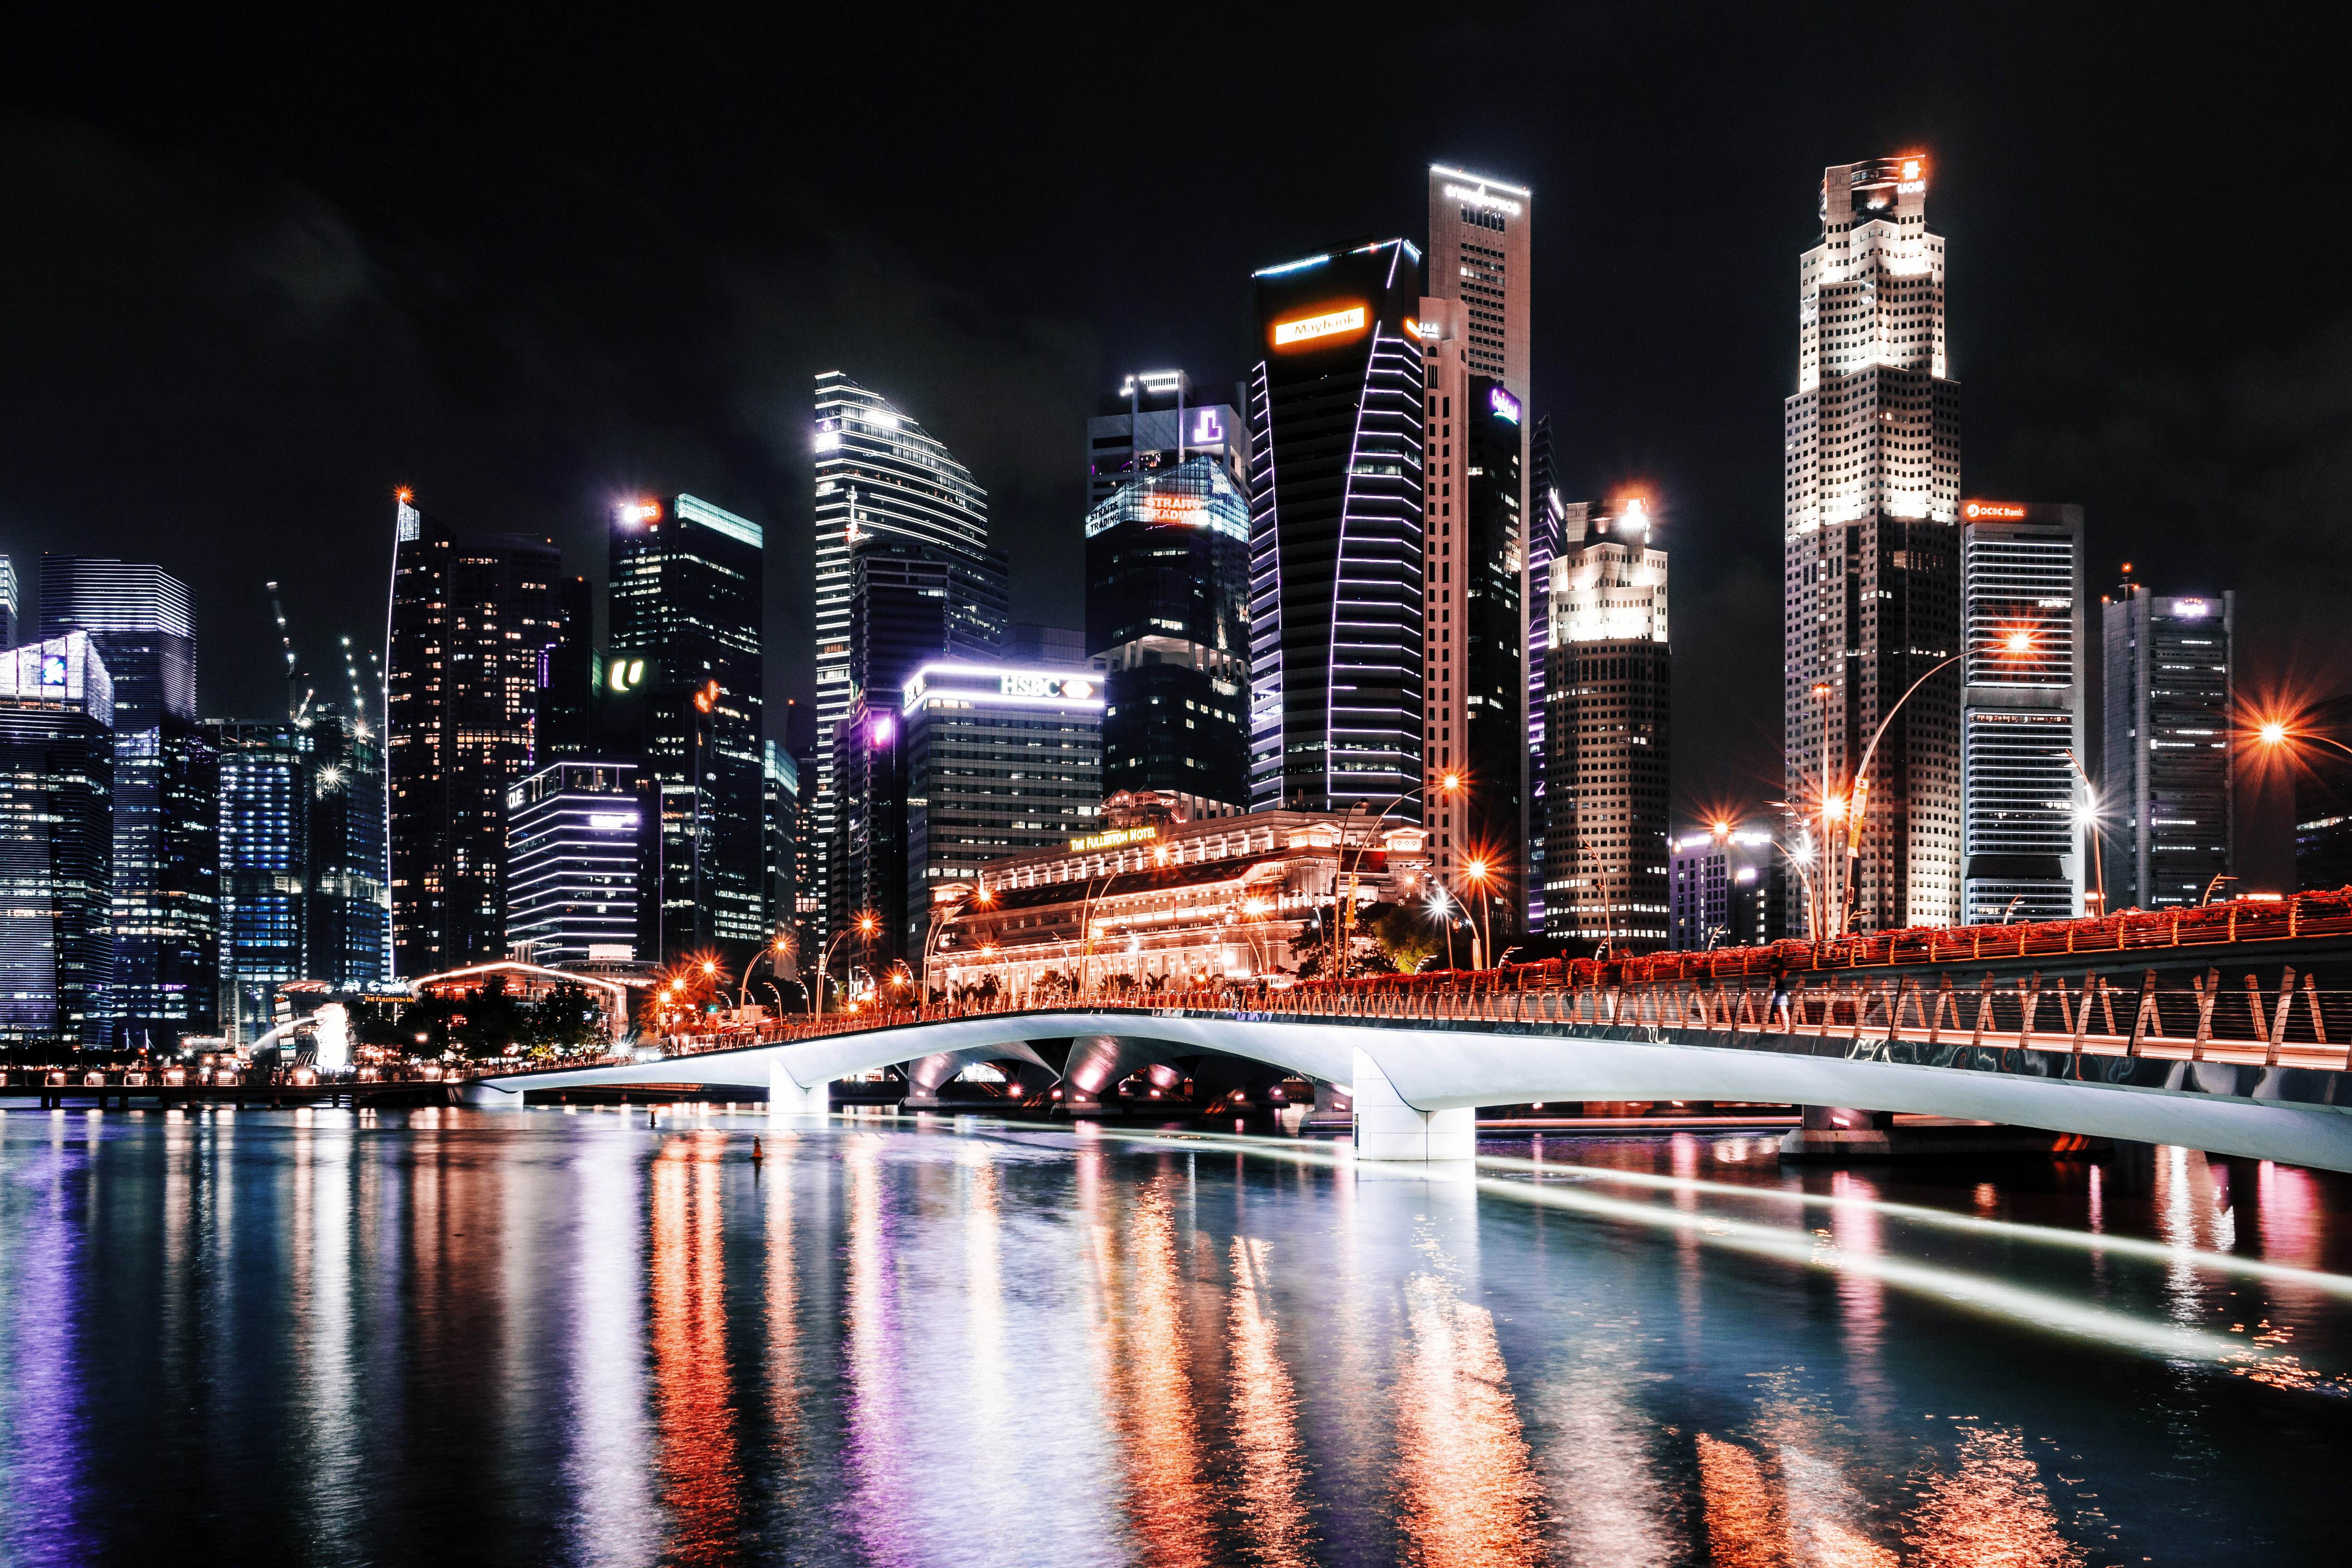 Stock Chart Singapore: Towers bridge skyscrapers and Cityscape in Singapore - Free ,Chart